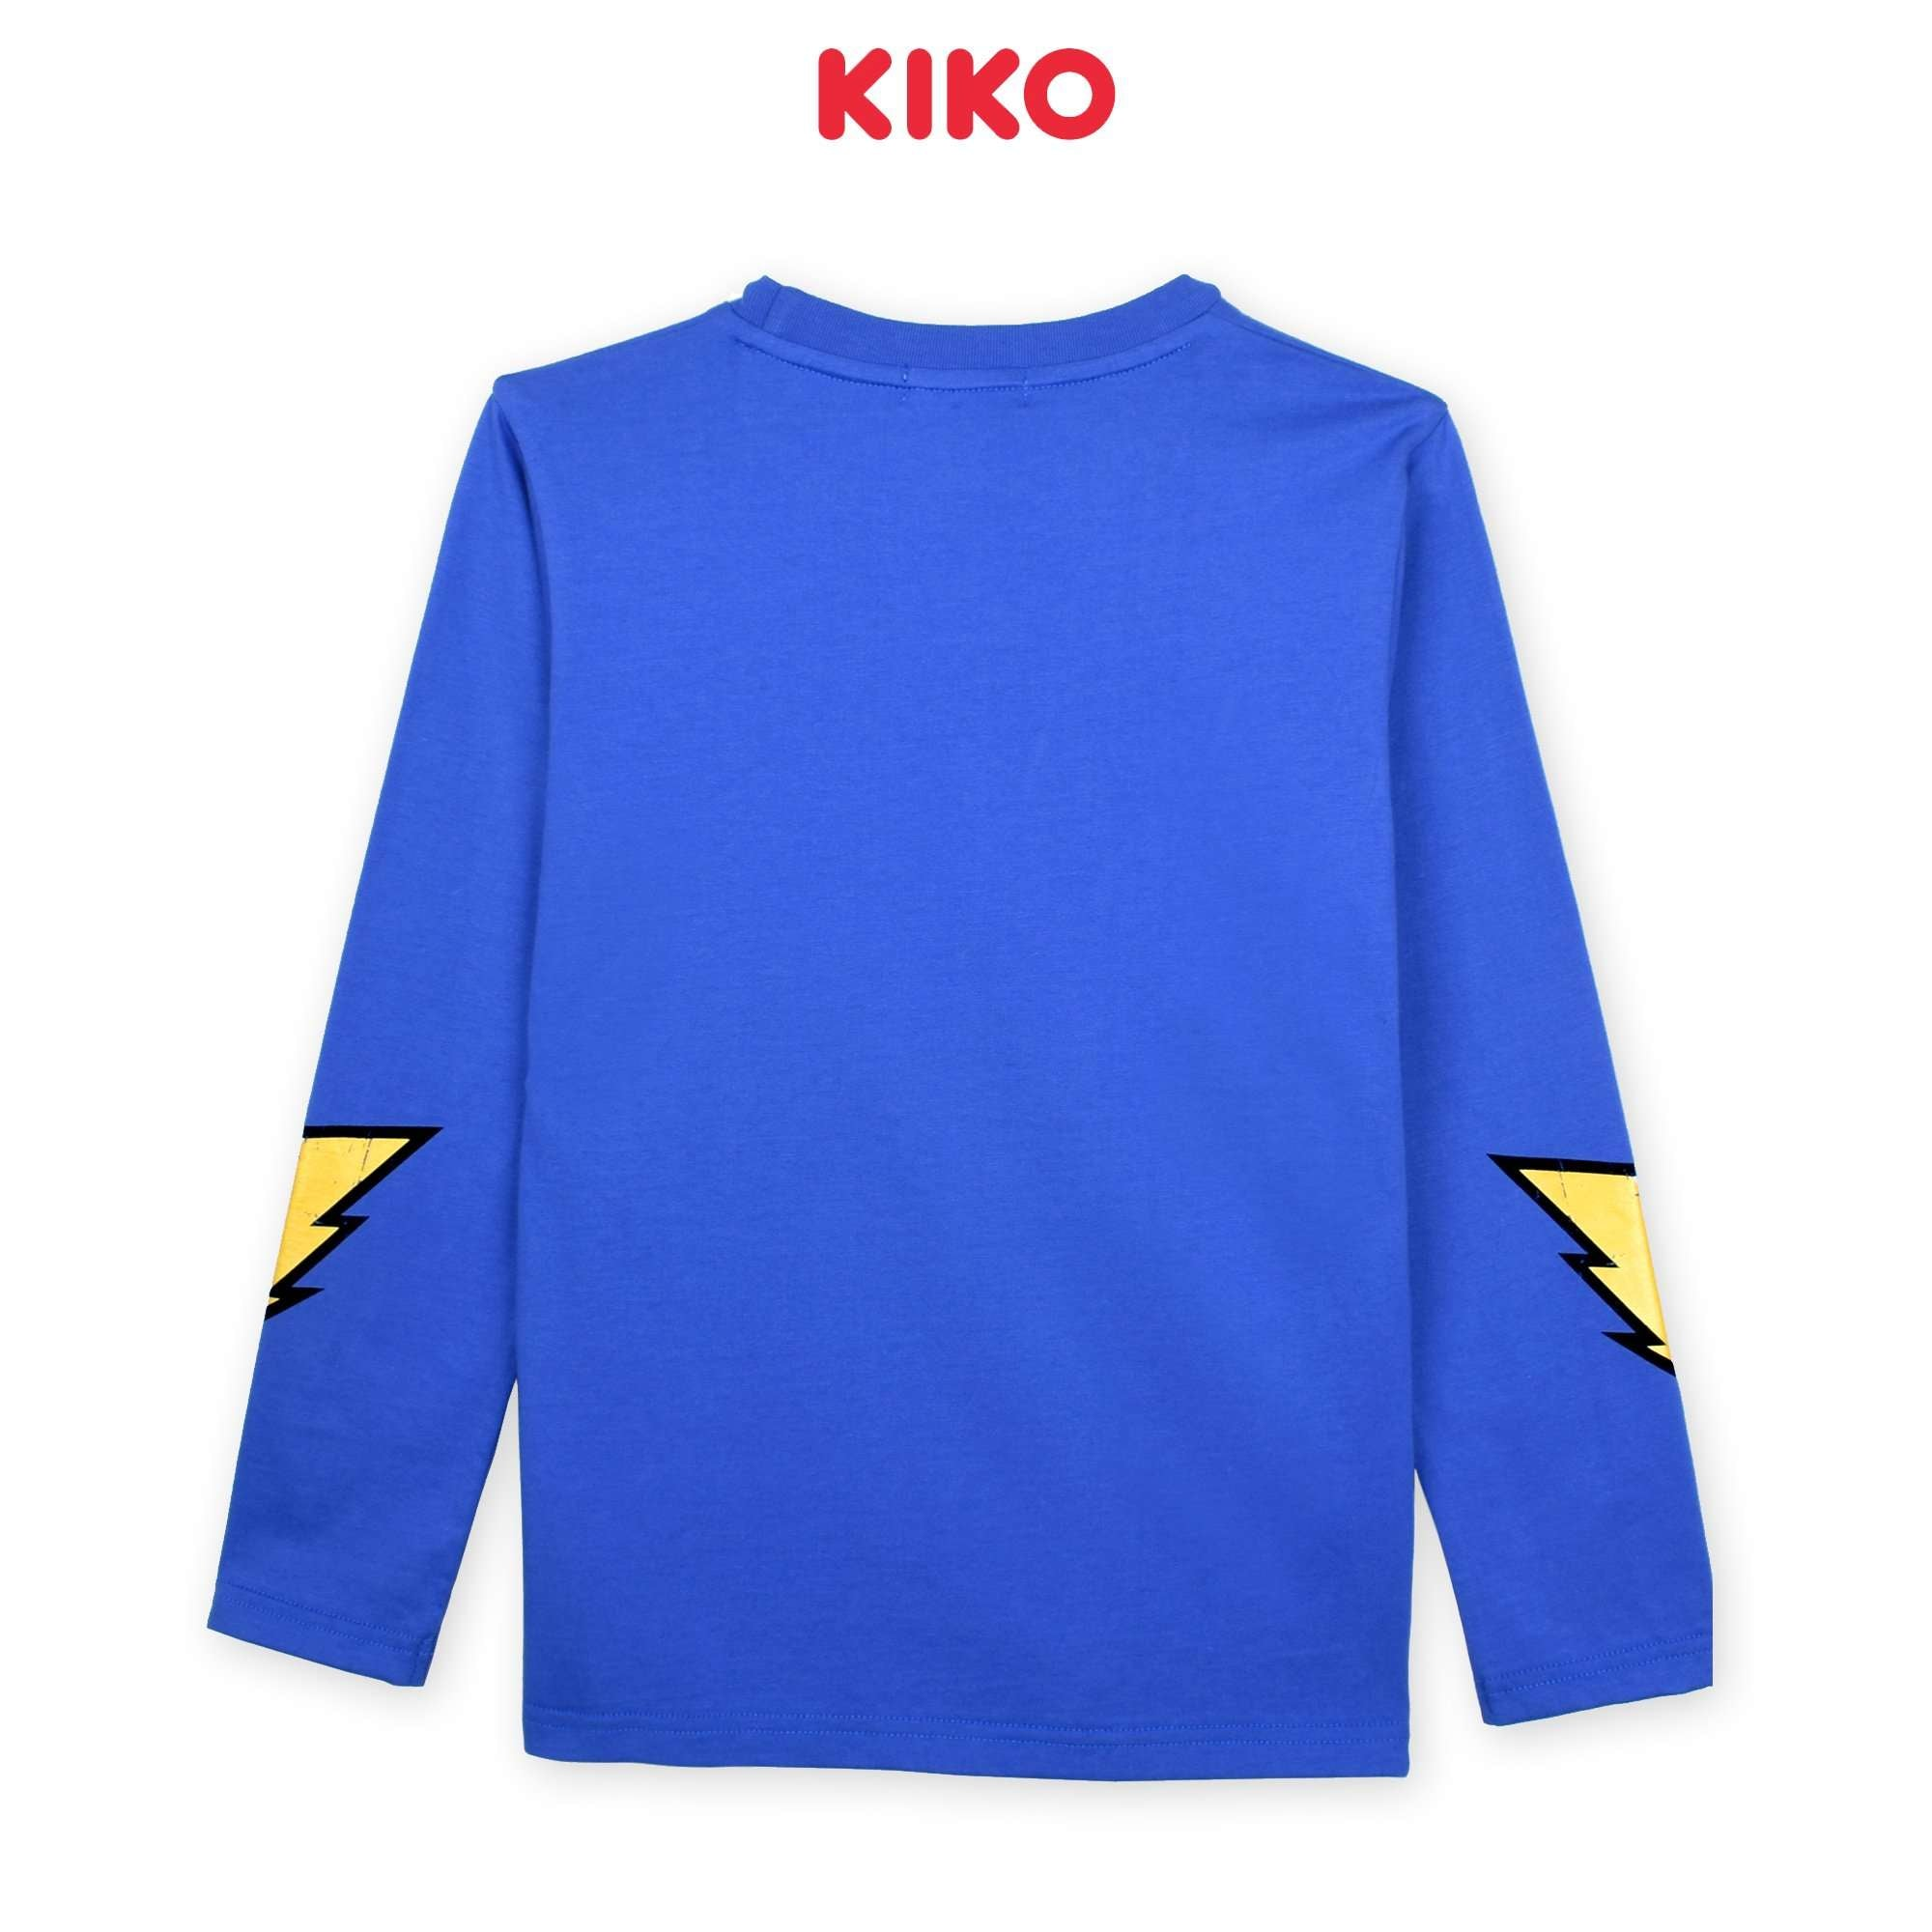 KIKO Boy Long Sleeve Tee - Blue K923103-1324-L5 : Buy KIKO online at CMG.MY